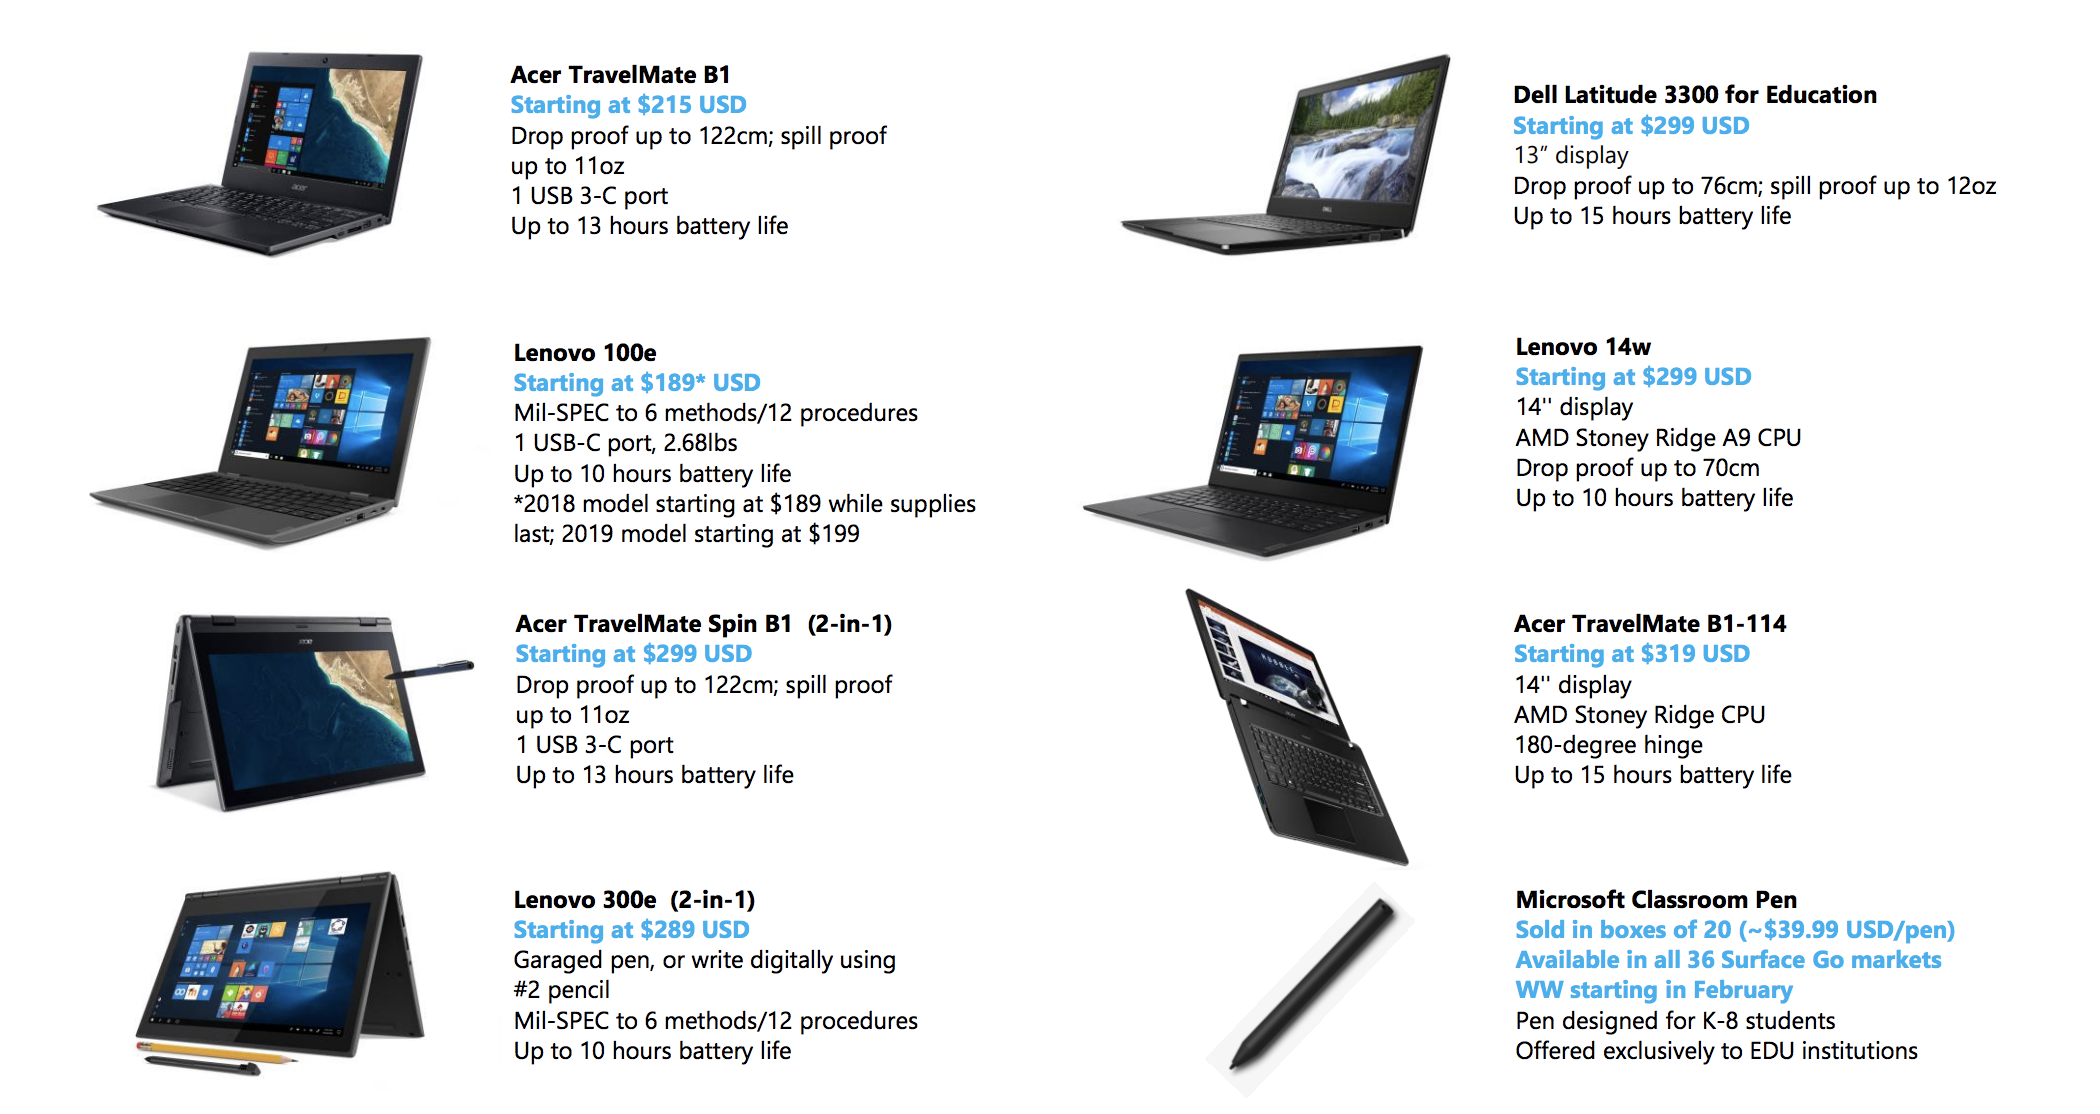 Microsoft debuts new low-cost laptops and 'Classroom Pen